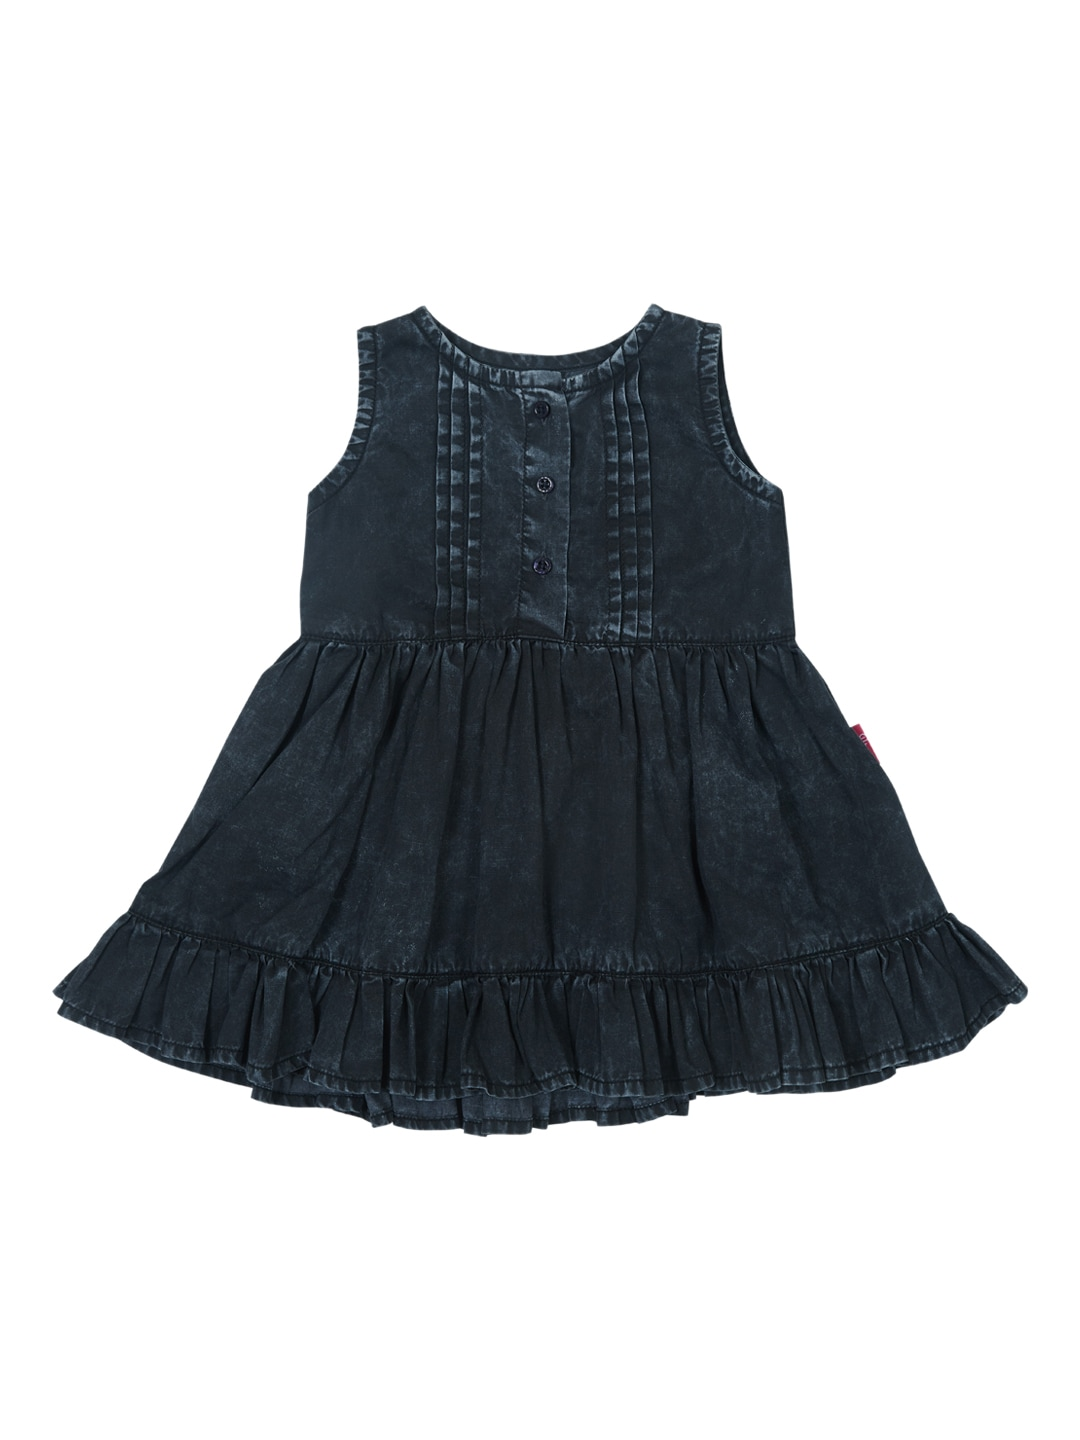 8ed5c57adb41 Baby Dresses - Buy Dress for Babies Online at Best Price